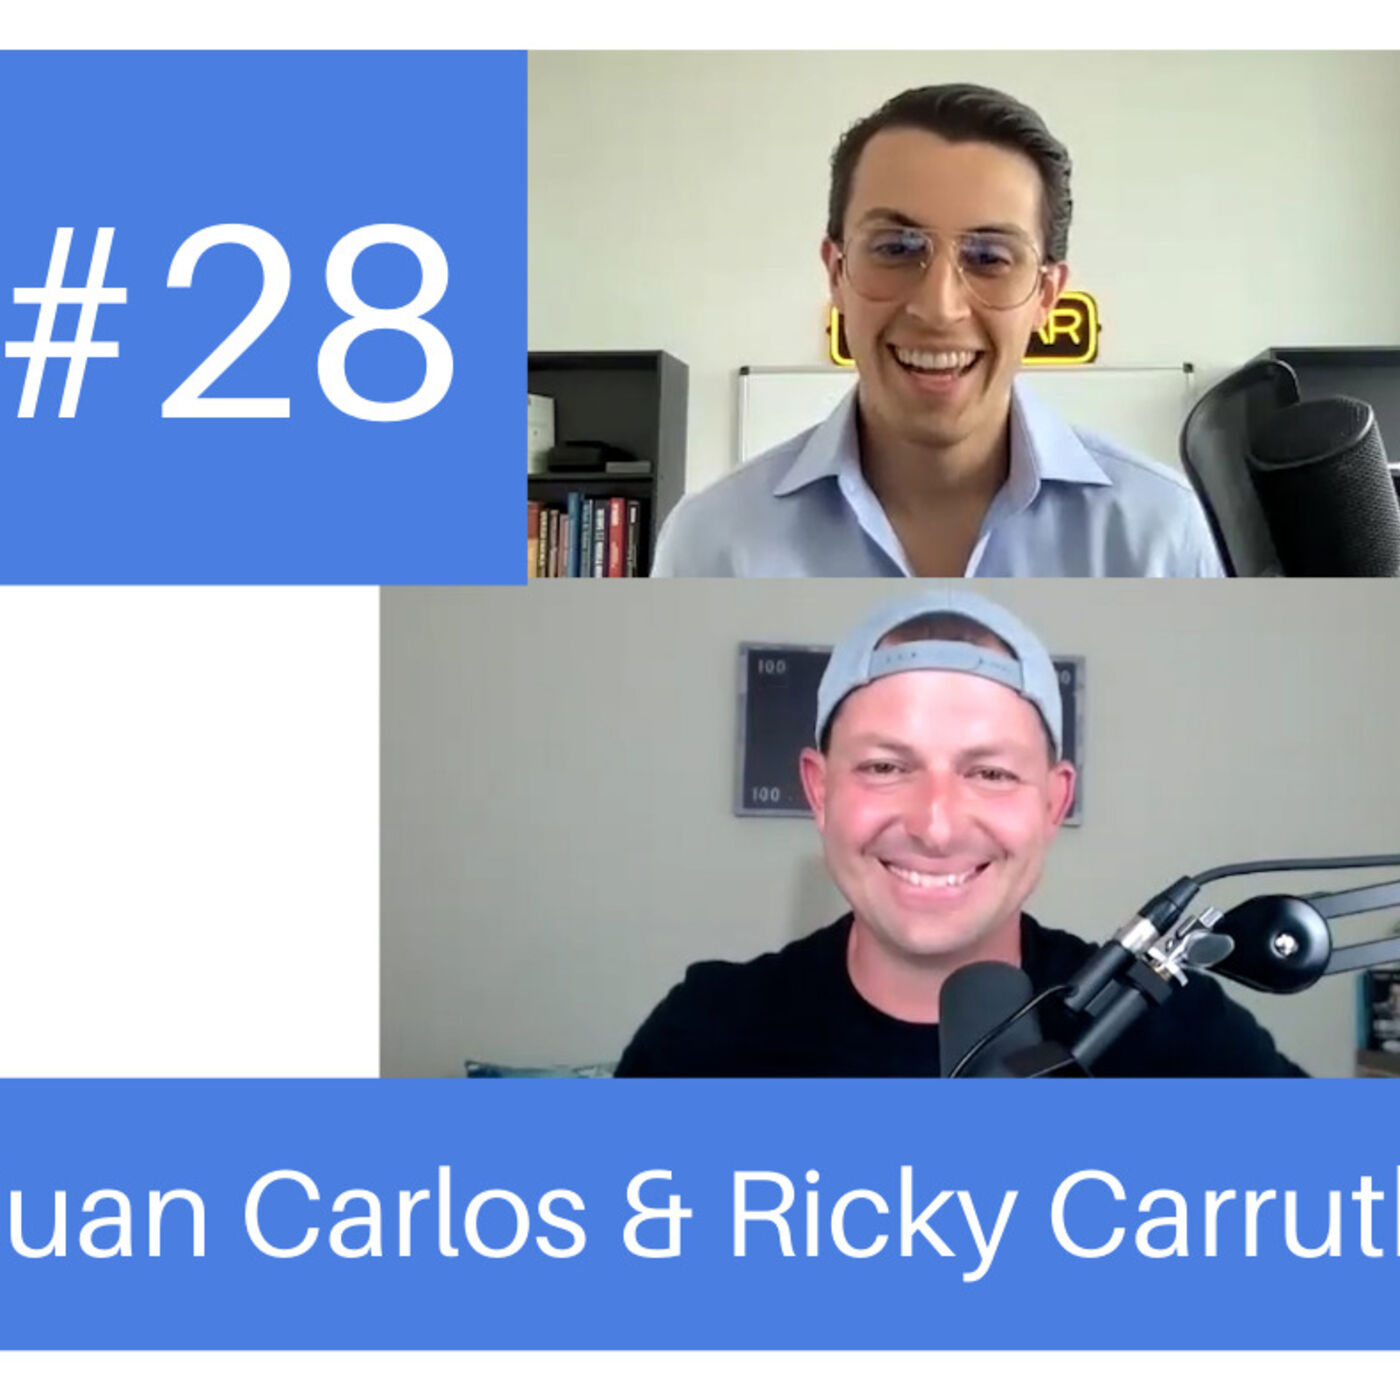 Podcast #28- The #1 Focus of Six-Figure Real Estate Pros (it's not what you think) w/ Rick Carruth and Juan Carlos Barreneche